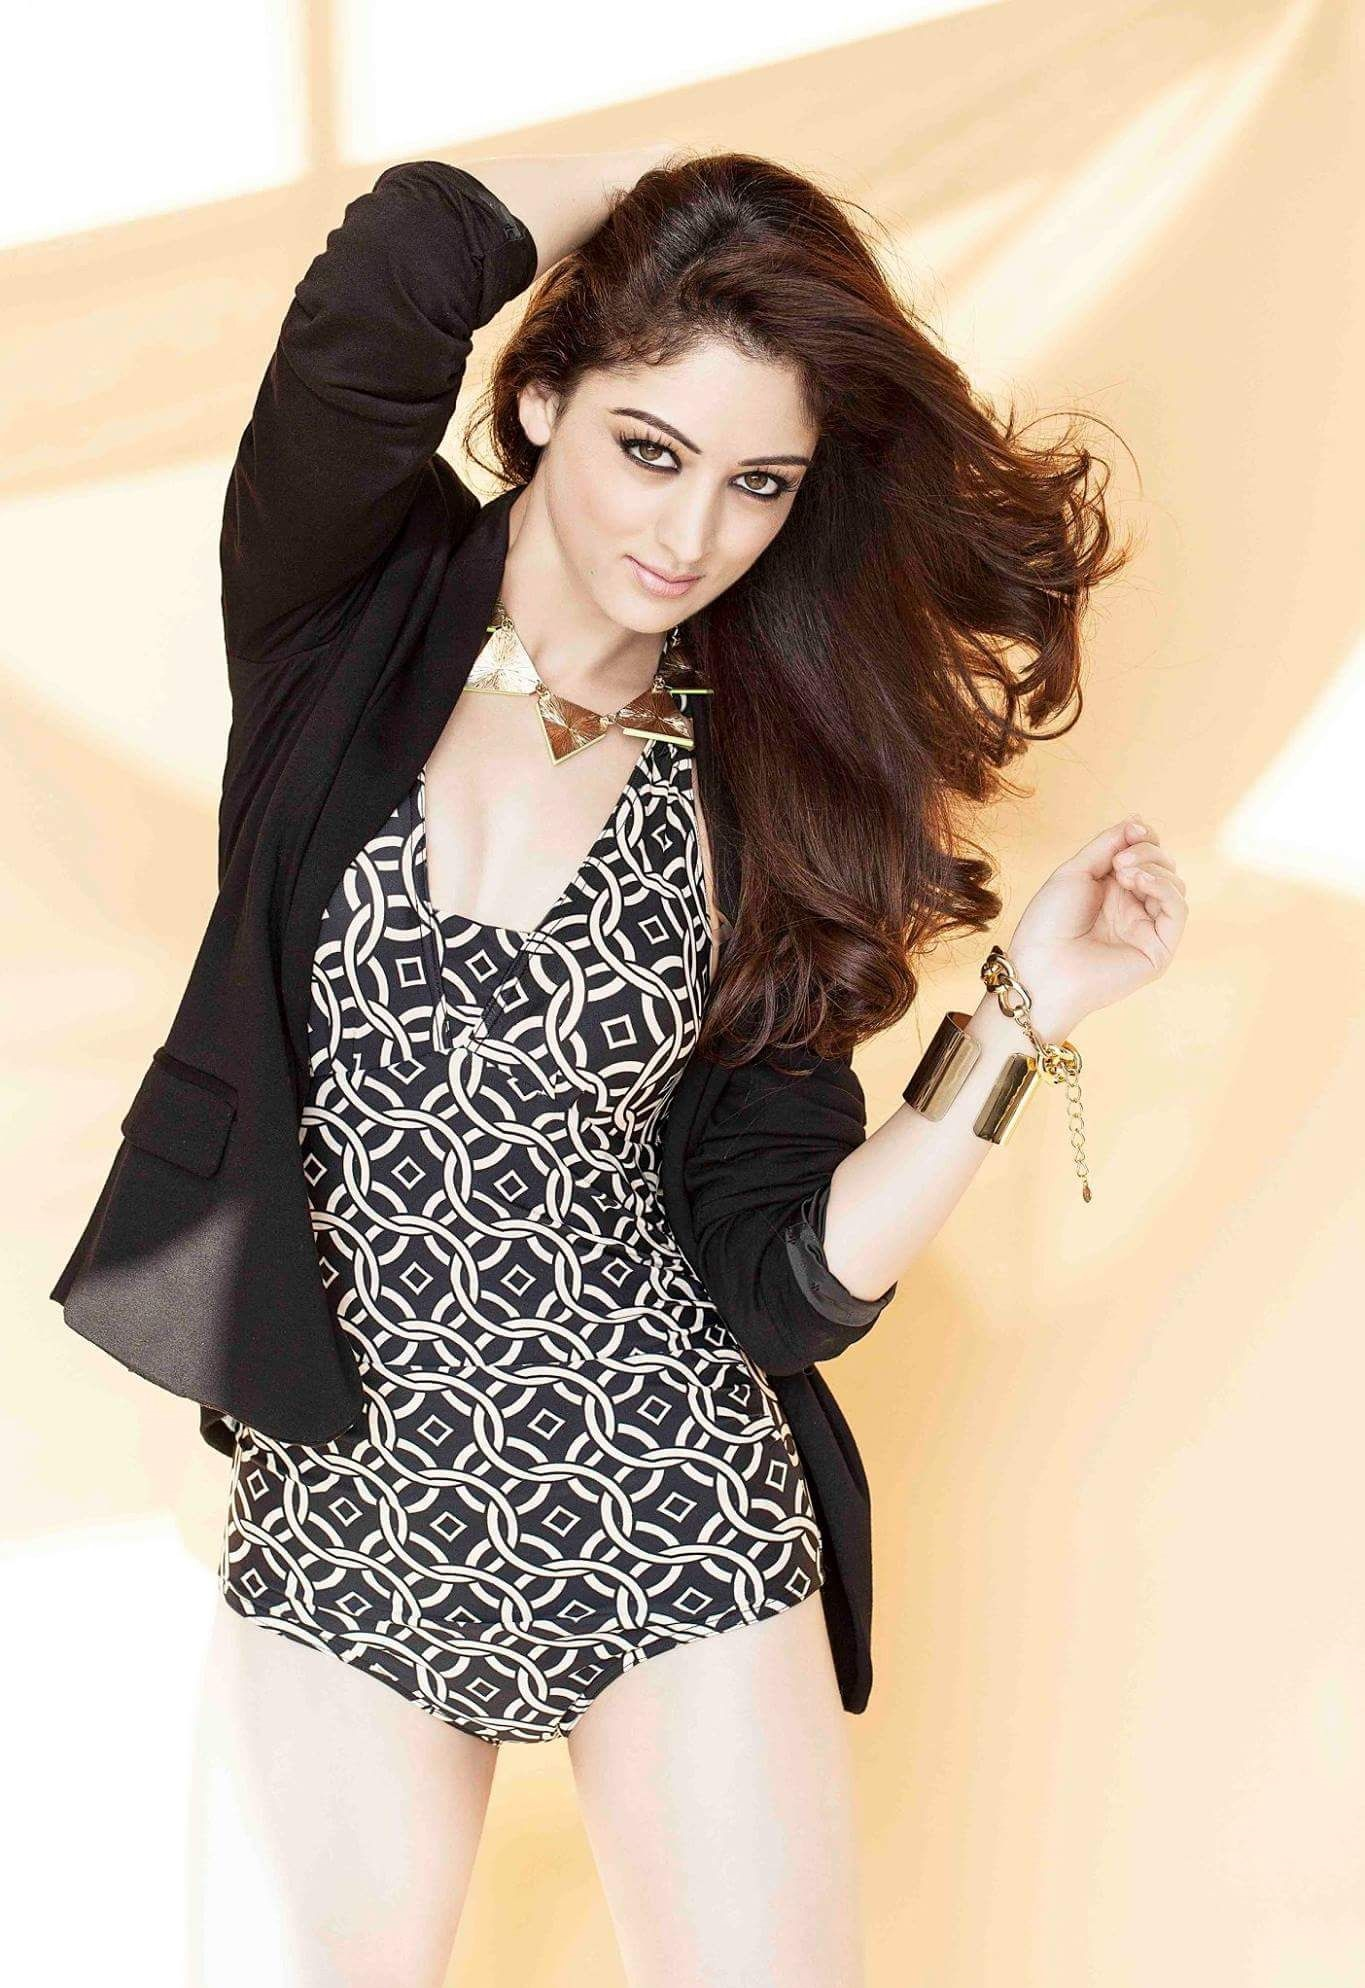 Sandeepa Dhar hot wallpapers in bikini